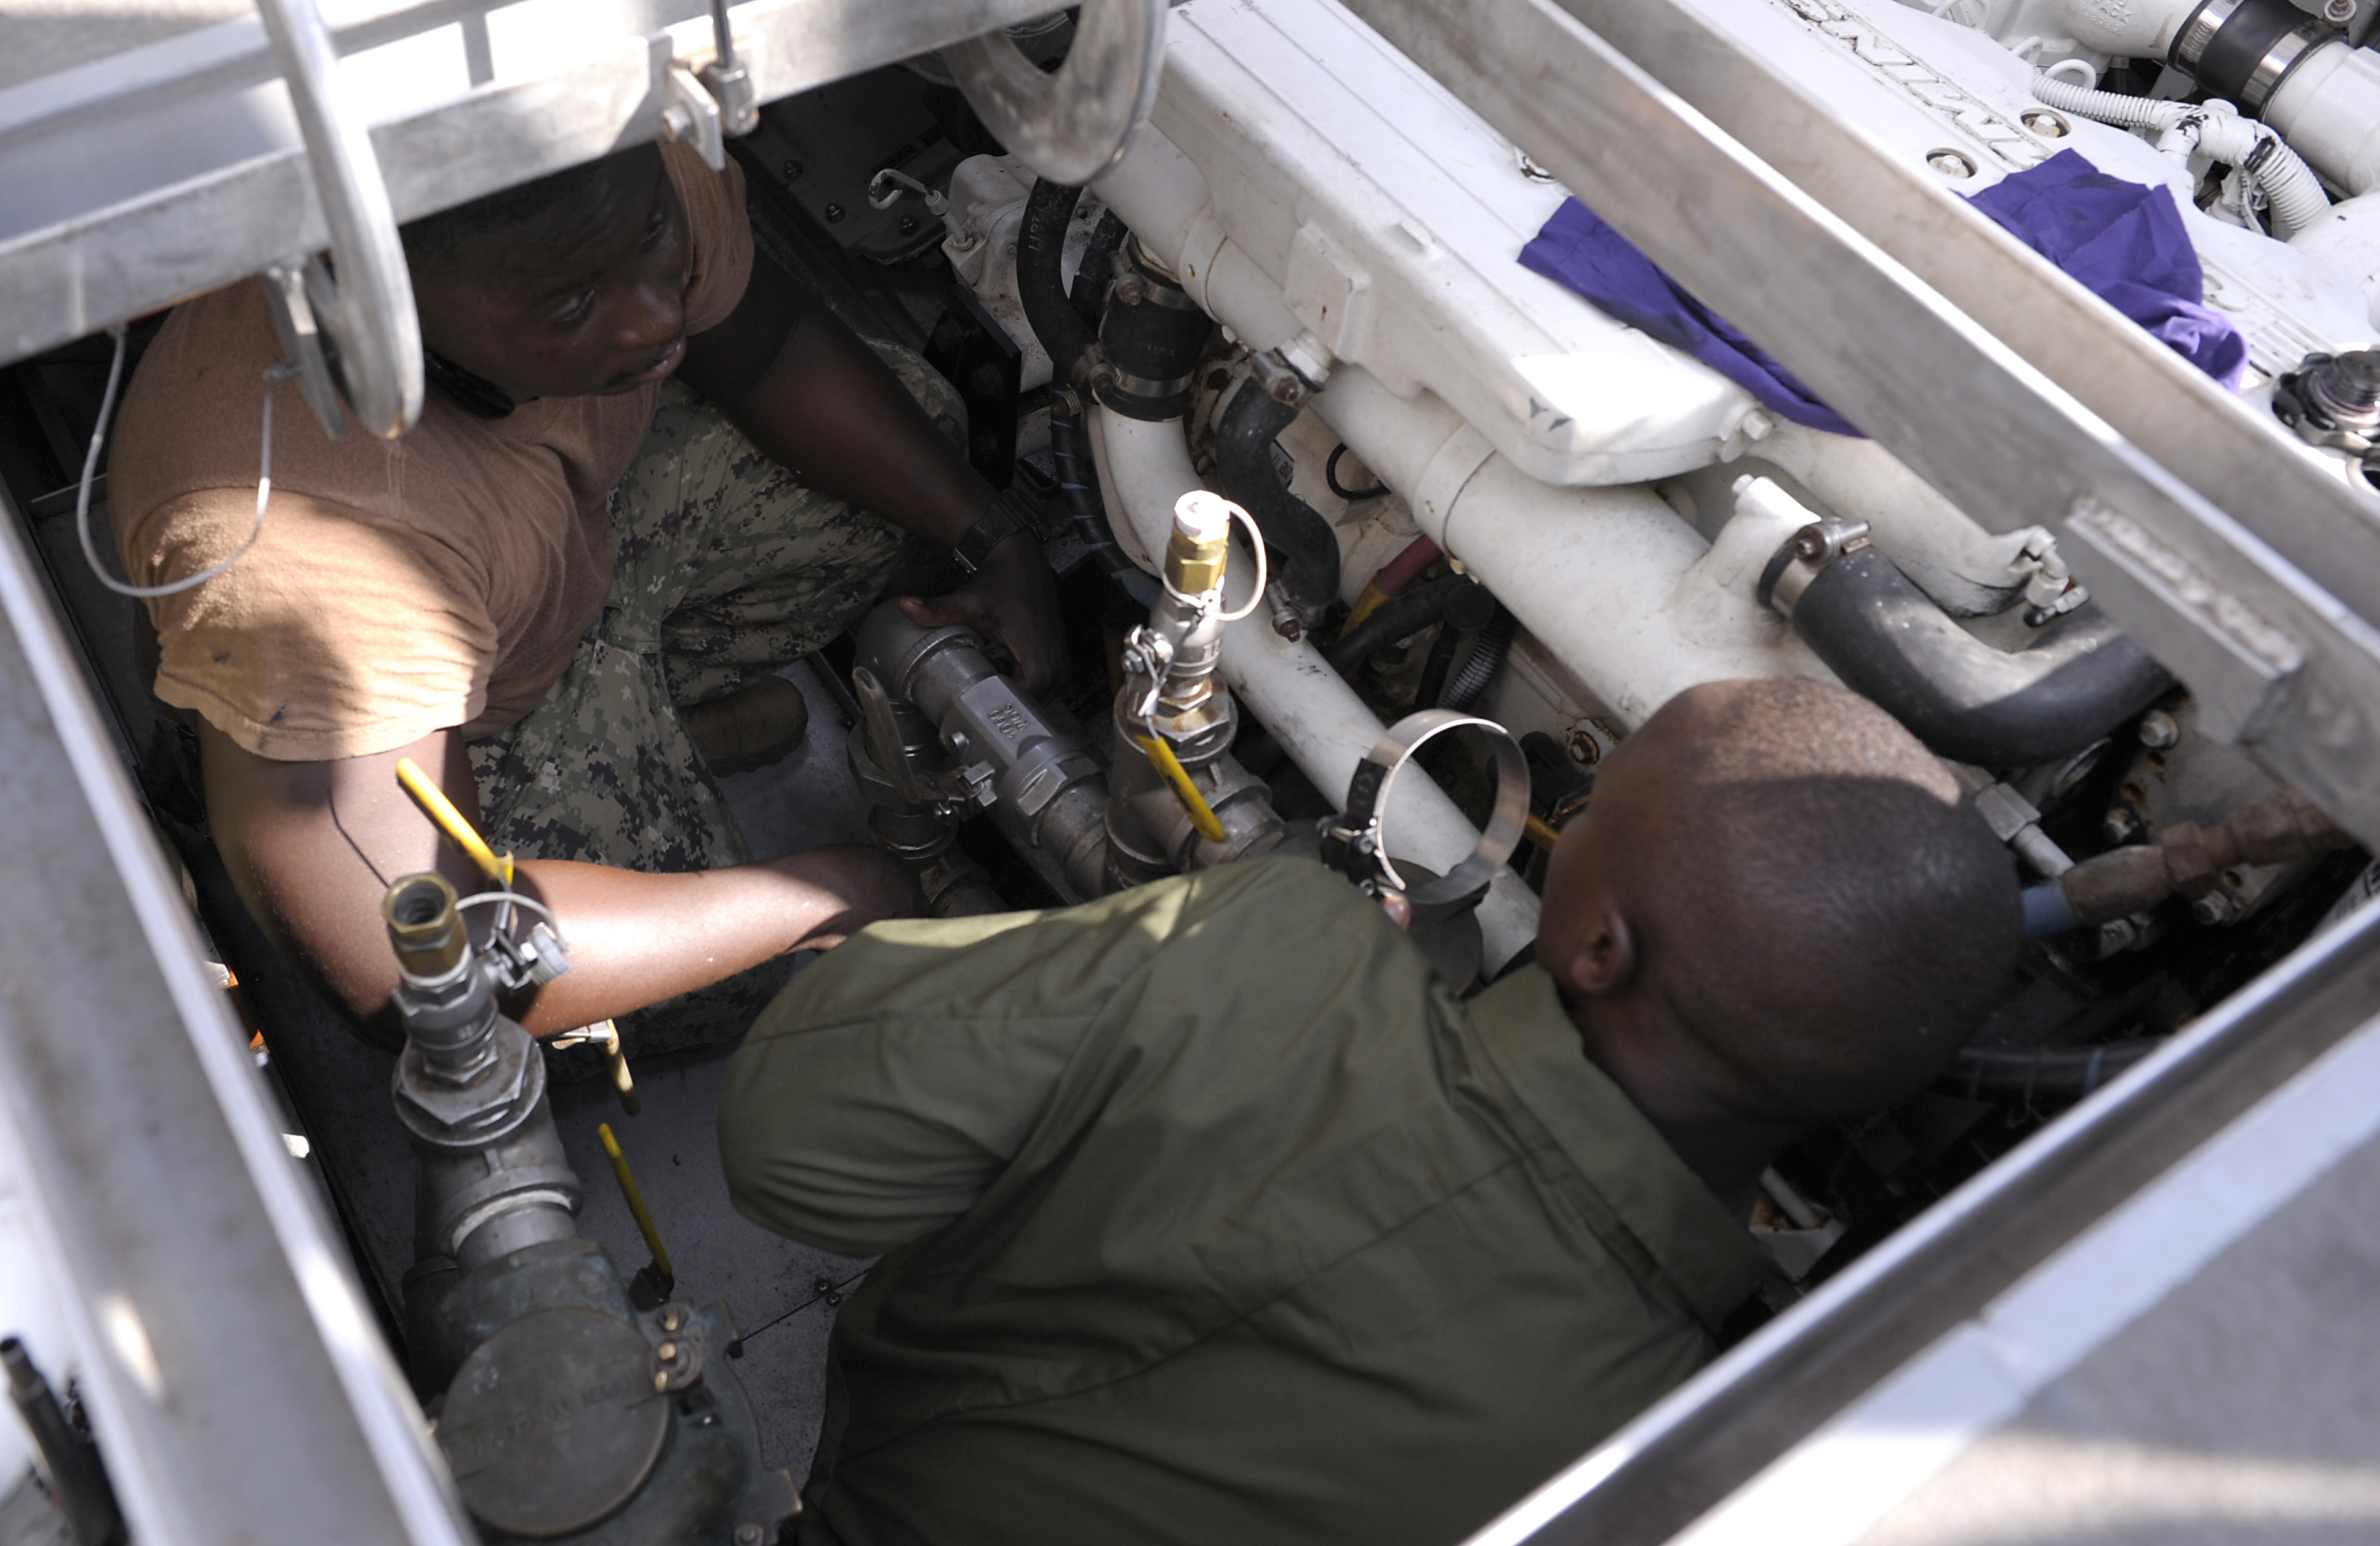 A member of the Kenya Defence Forces Navy and a member of Coastal Riverine Squadron 10 work together on an oil change at Camp Lemonnier, Djibouti, Jan. 18, 2016. The Kenyans and Americans met for a two-day maintenance and operations seminar. (U.S. Air Force photo by Tech. Sgt. Dan DeCook)